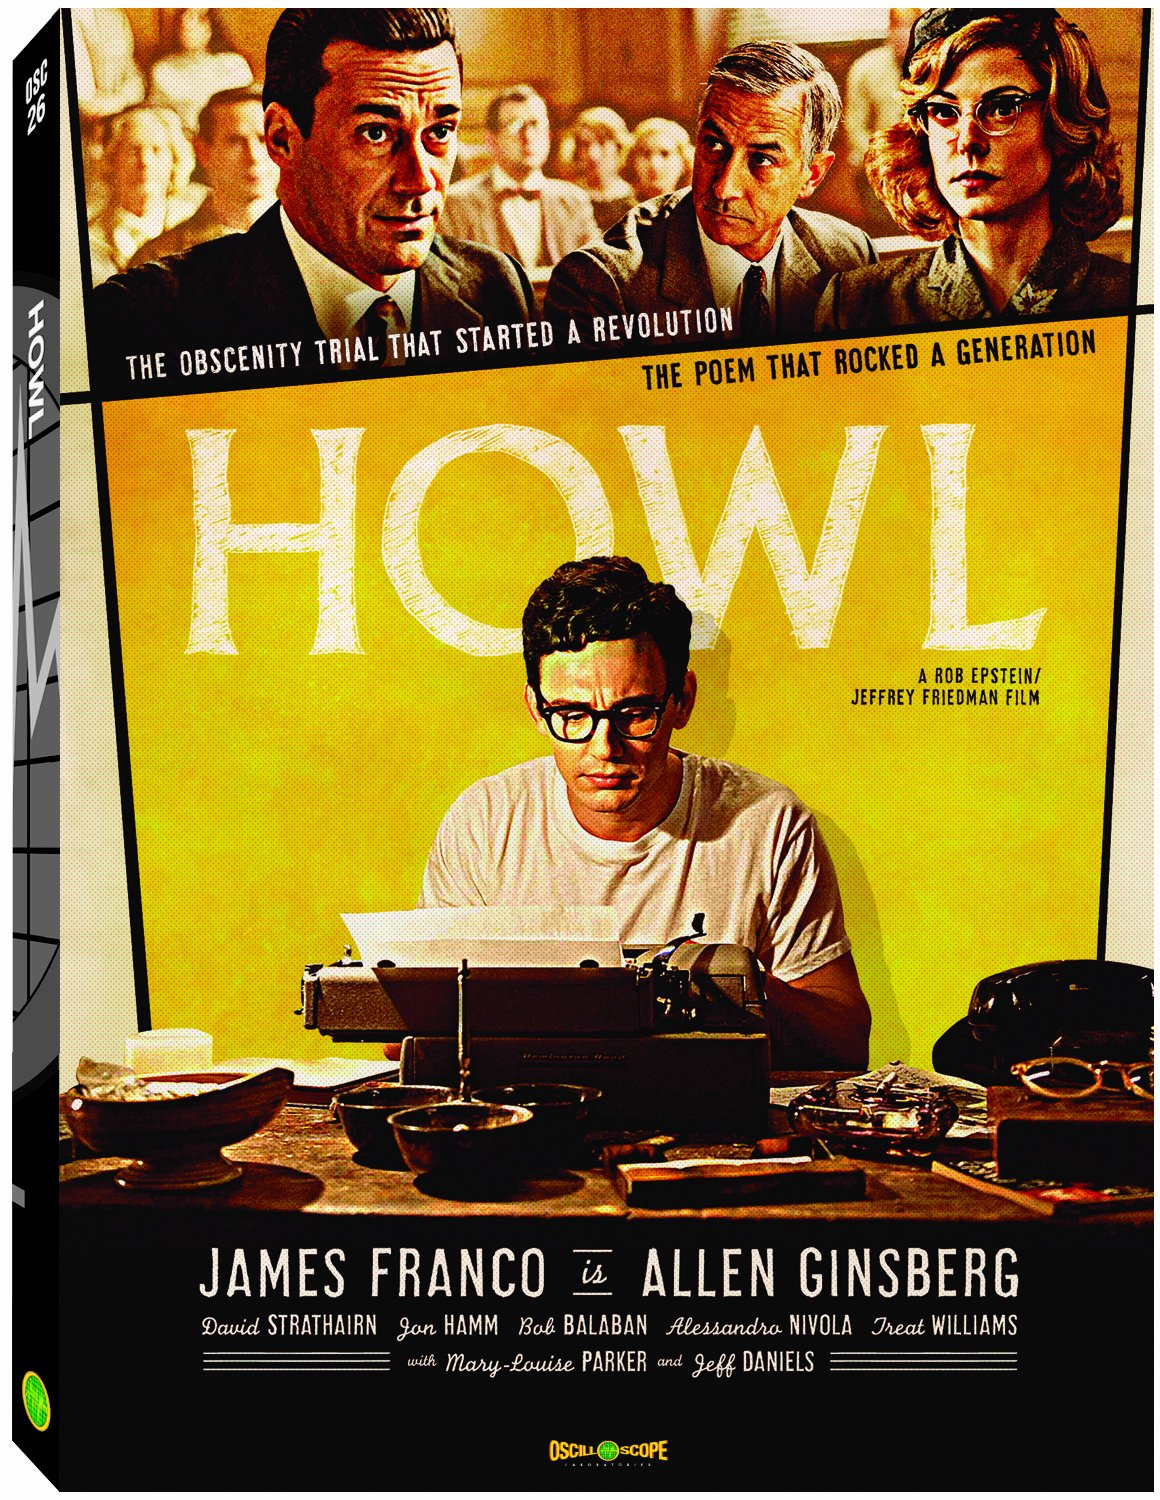 Amazoncom Howl James Franco Jon Hamm Mary-Louise Parker David  Strathairn Bob Balaban Alessandro Nivola Jeff Daniels Treat Williams  Rob Epstein Jeffrey Friedman Movies  TV